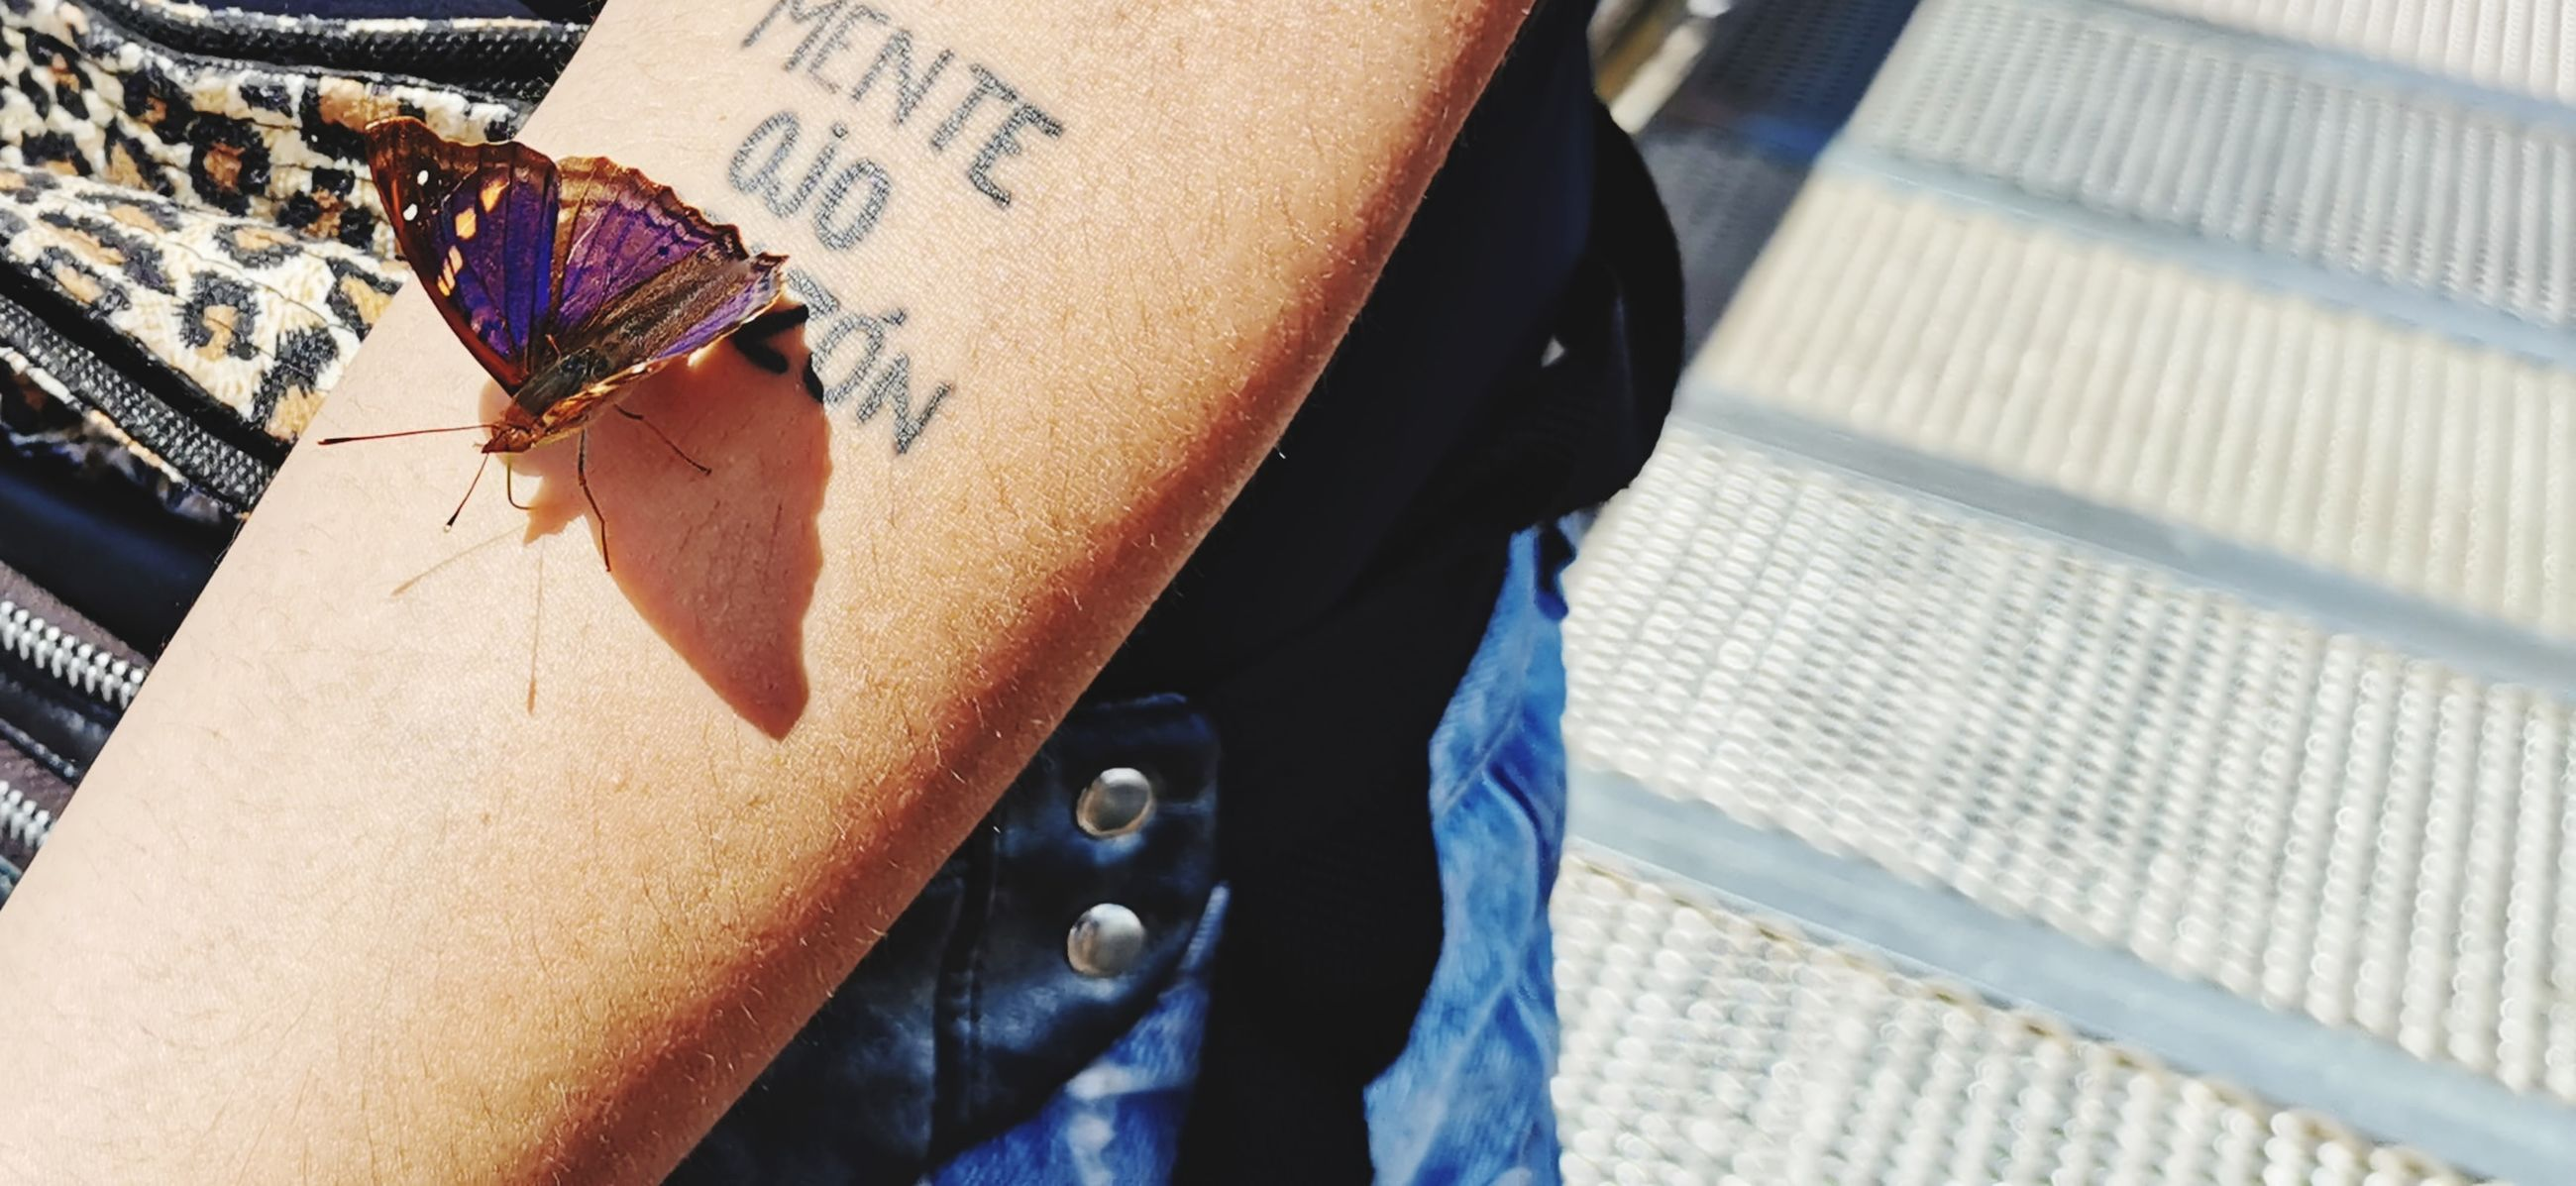 real people, men, midsection, people, day, sunlight, human body part, casual clothing, focus on foreground, lifestyles, body part, outdoors, two people, human hand, human limb, close-up, hand, leisure activity, adult, jeans